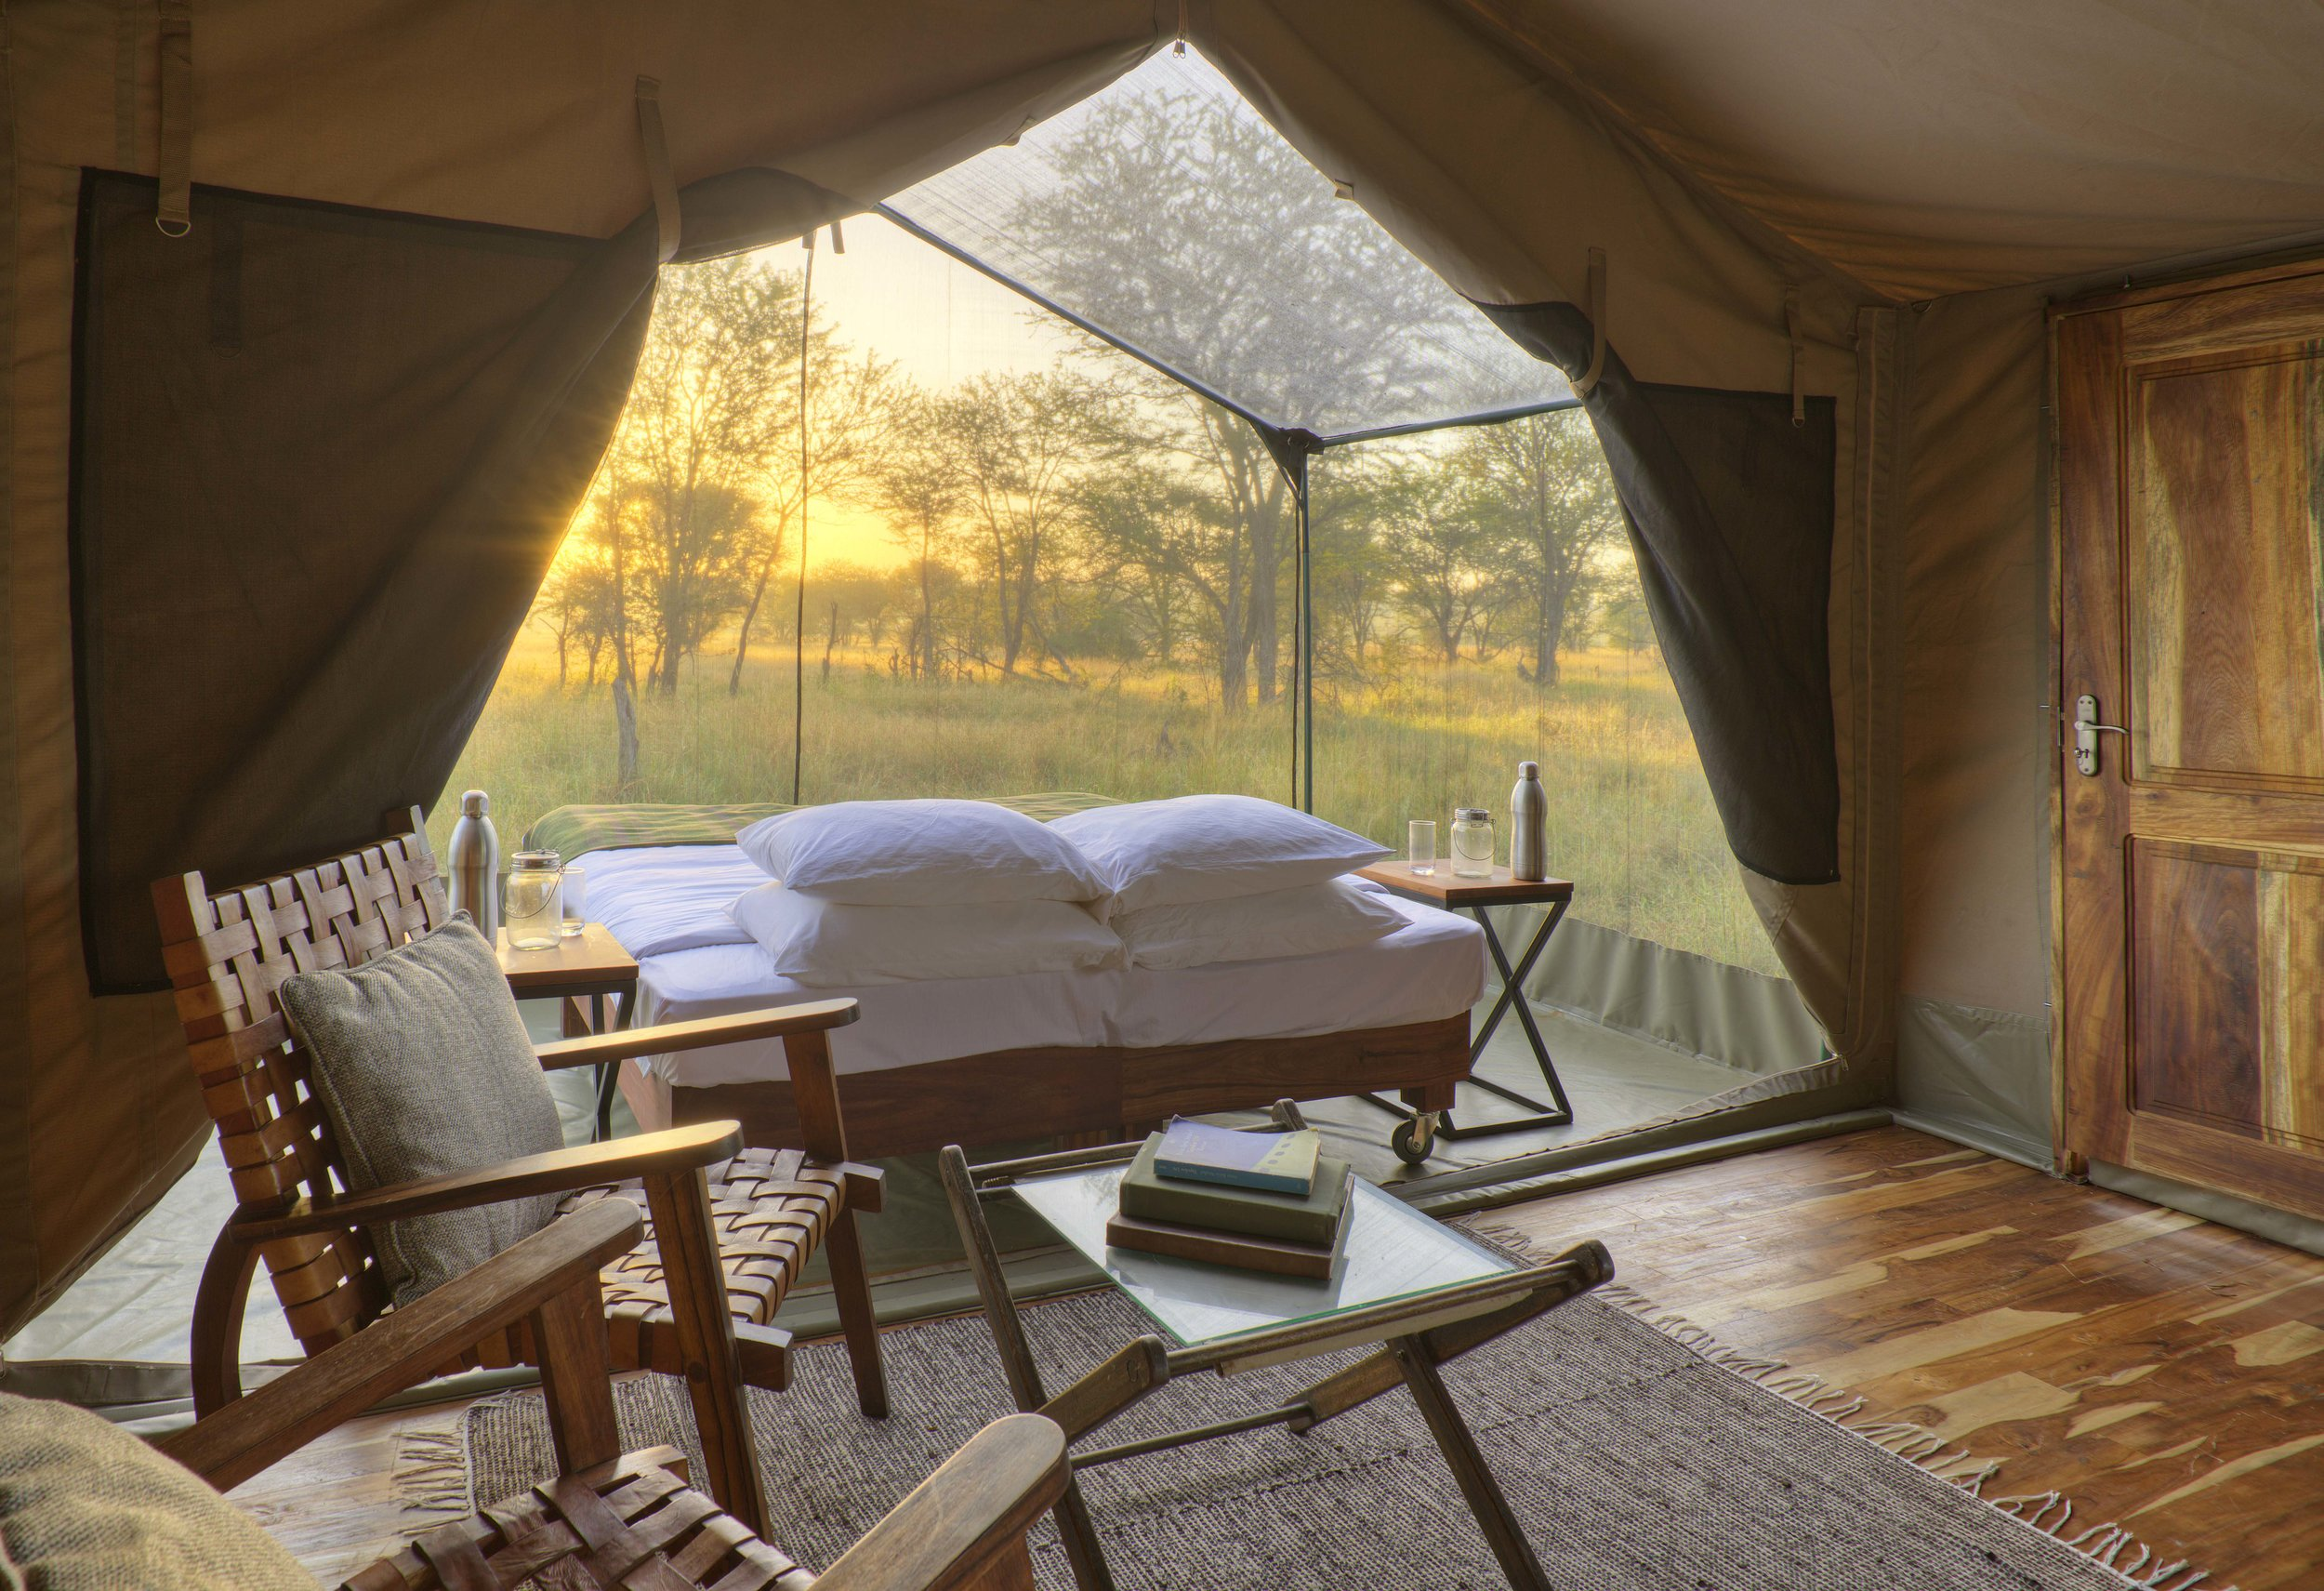 Olakira-View-from-the-lounge-area-onto-the-star-gazing-tent.jpg